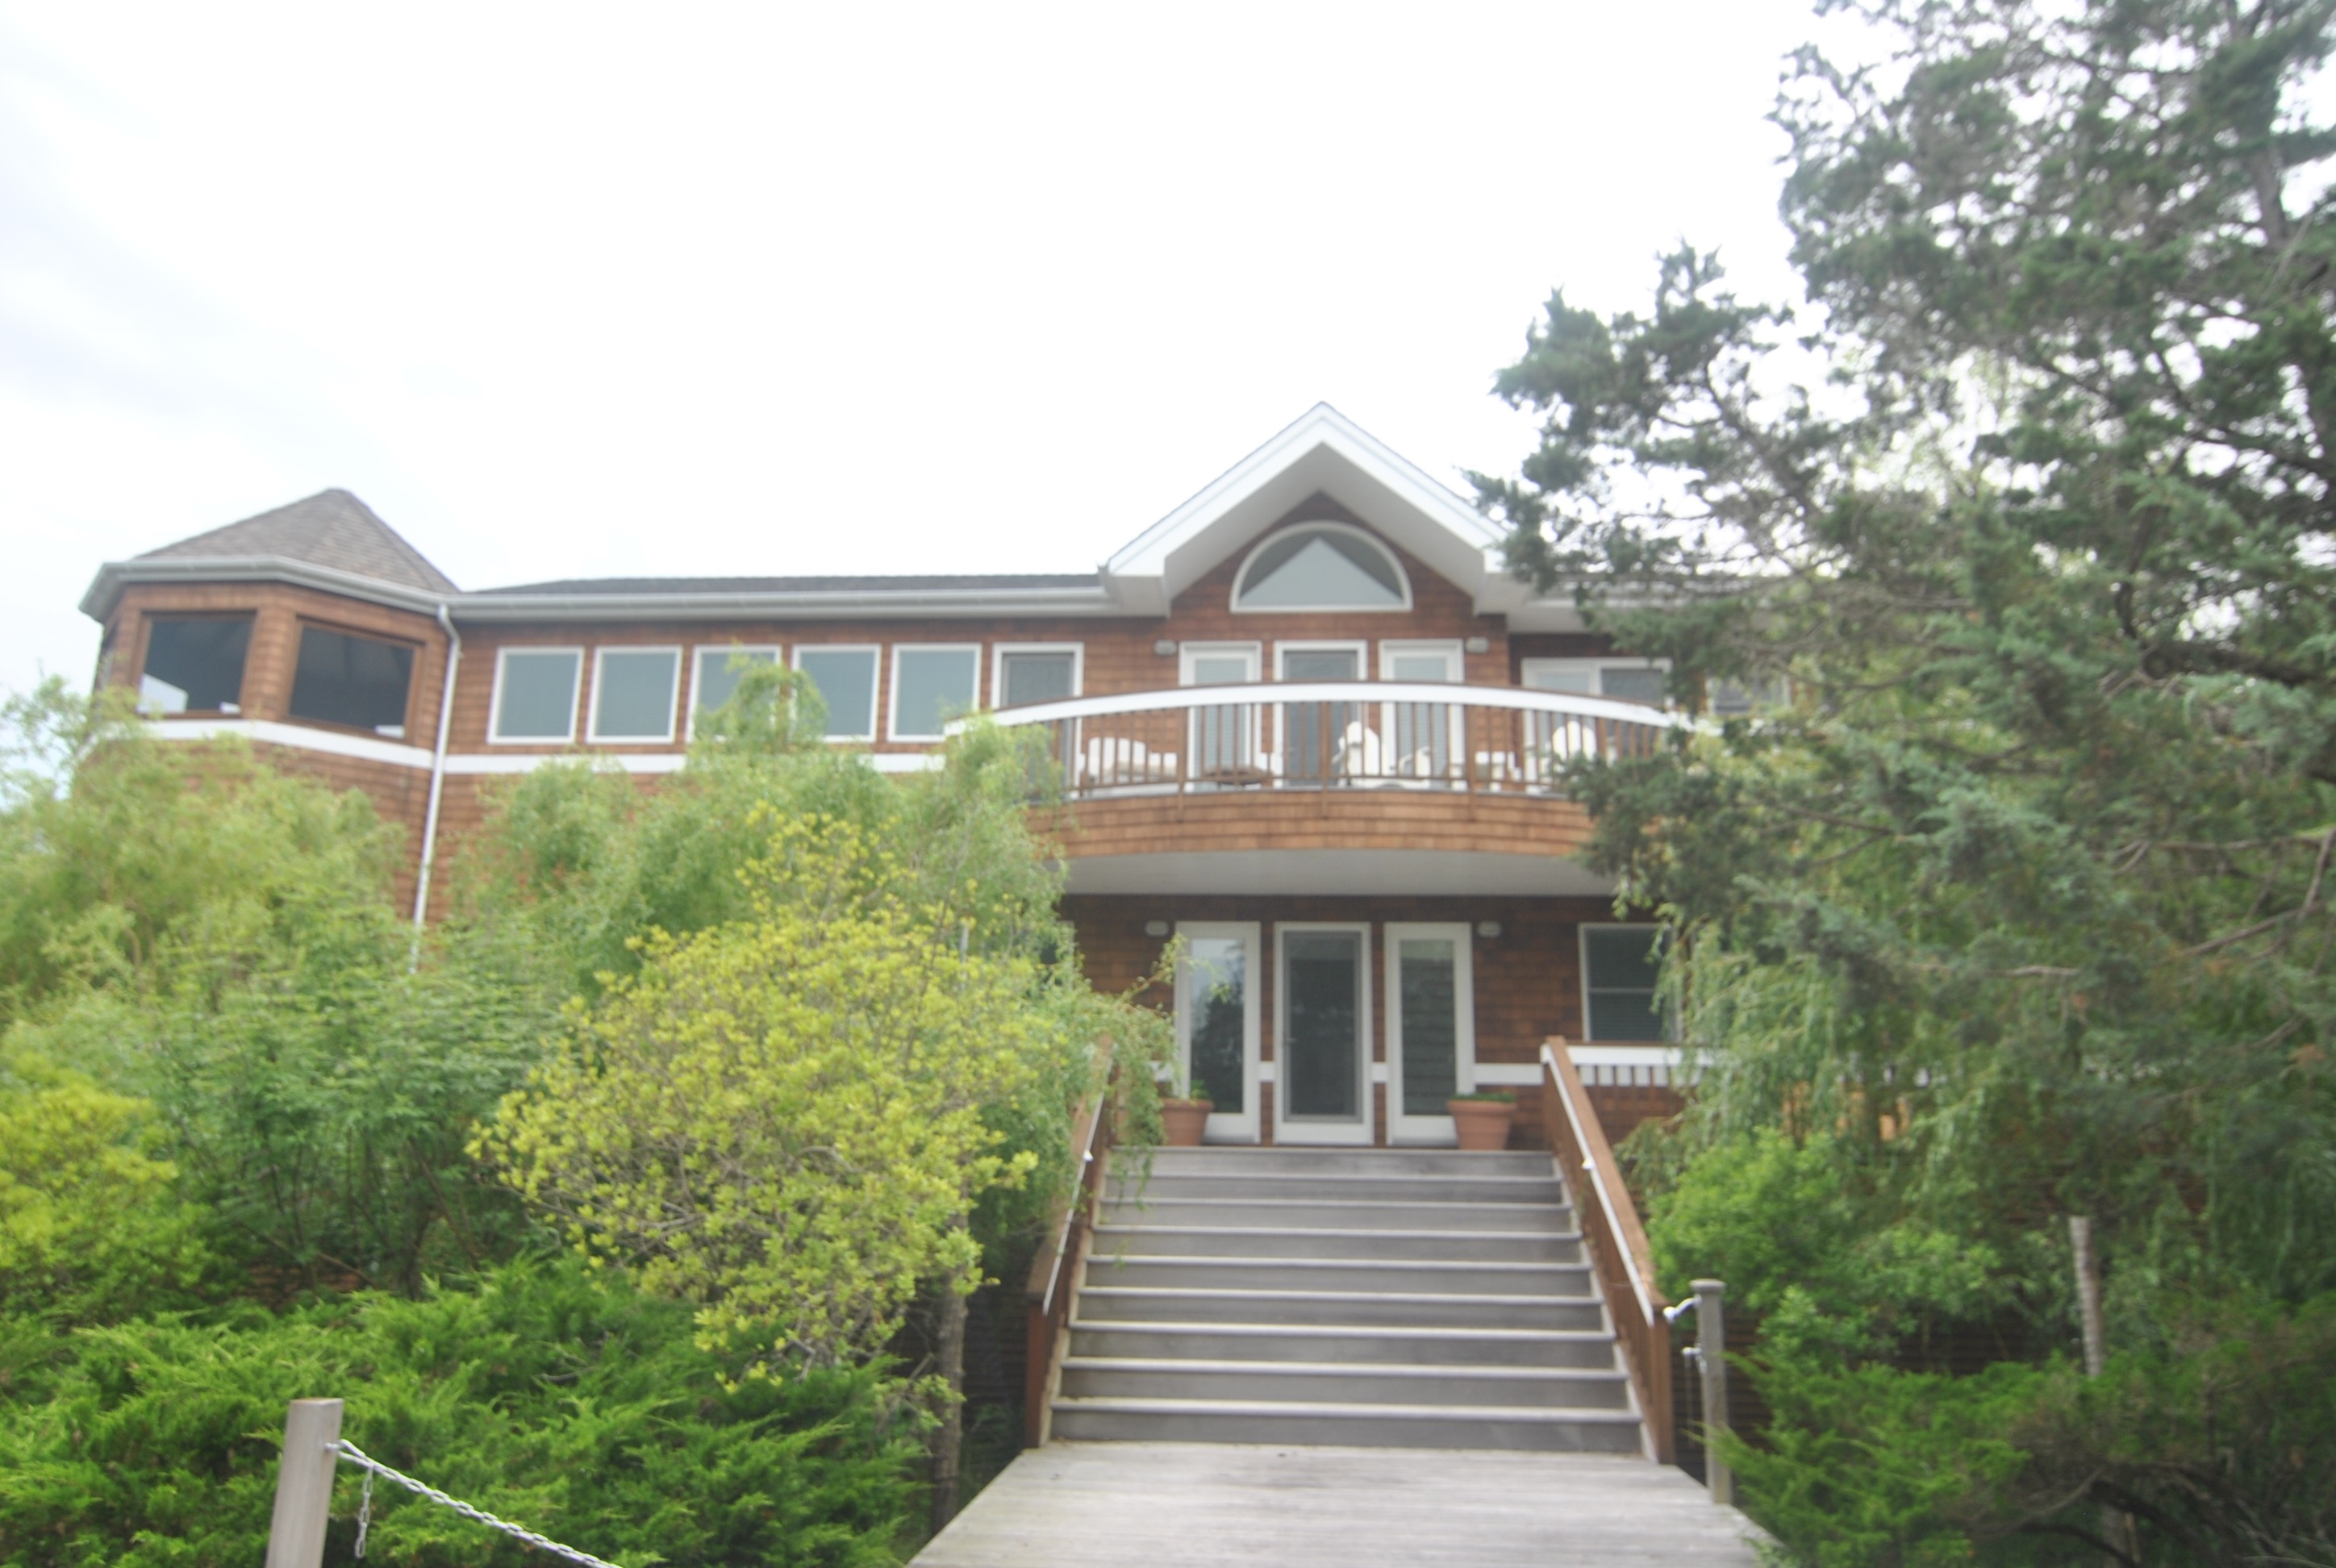 This custom built 3,224 square foot home is truly special.  Situated just 300 feet from the beach, it is the perfect vacation home for your large family.  With 5 spacious bedrooms, 3.5 bathrooms, huge open great room, expansive decks, and 2 screened in porches, this home has it all.  Large open kitchen with gas cooking and Subzero refrigerator.  Custom built-ins in every room. Massive 100' X 100' lot.  This home is a must see.